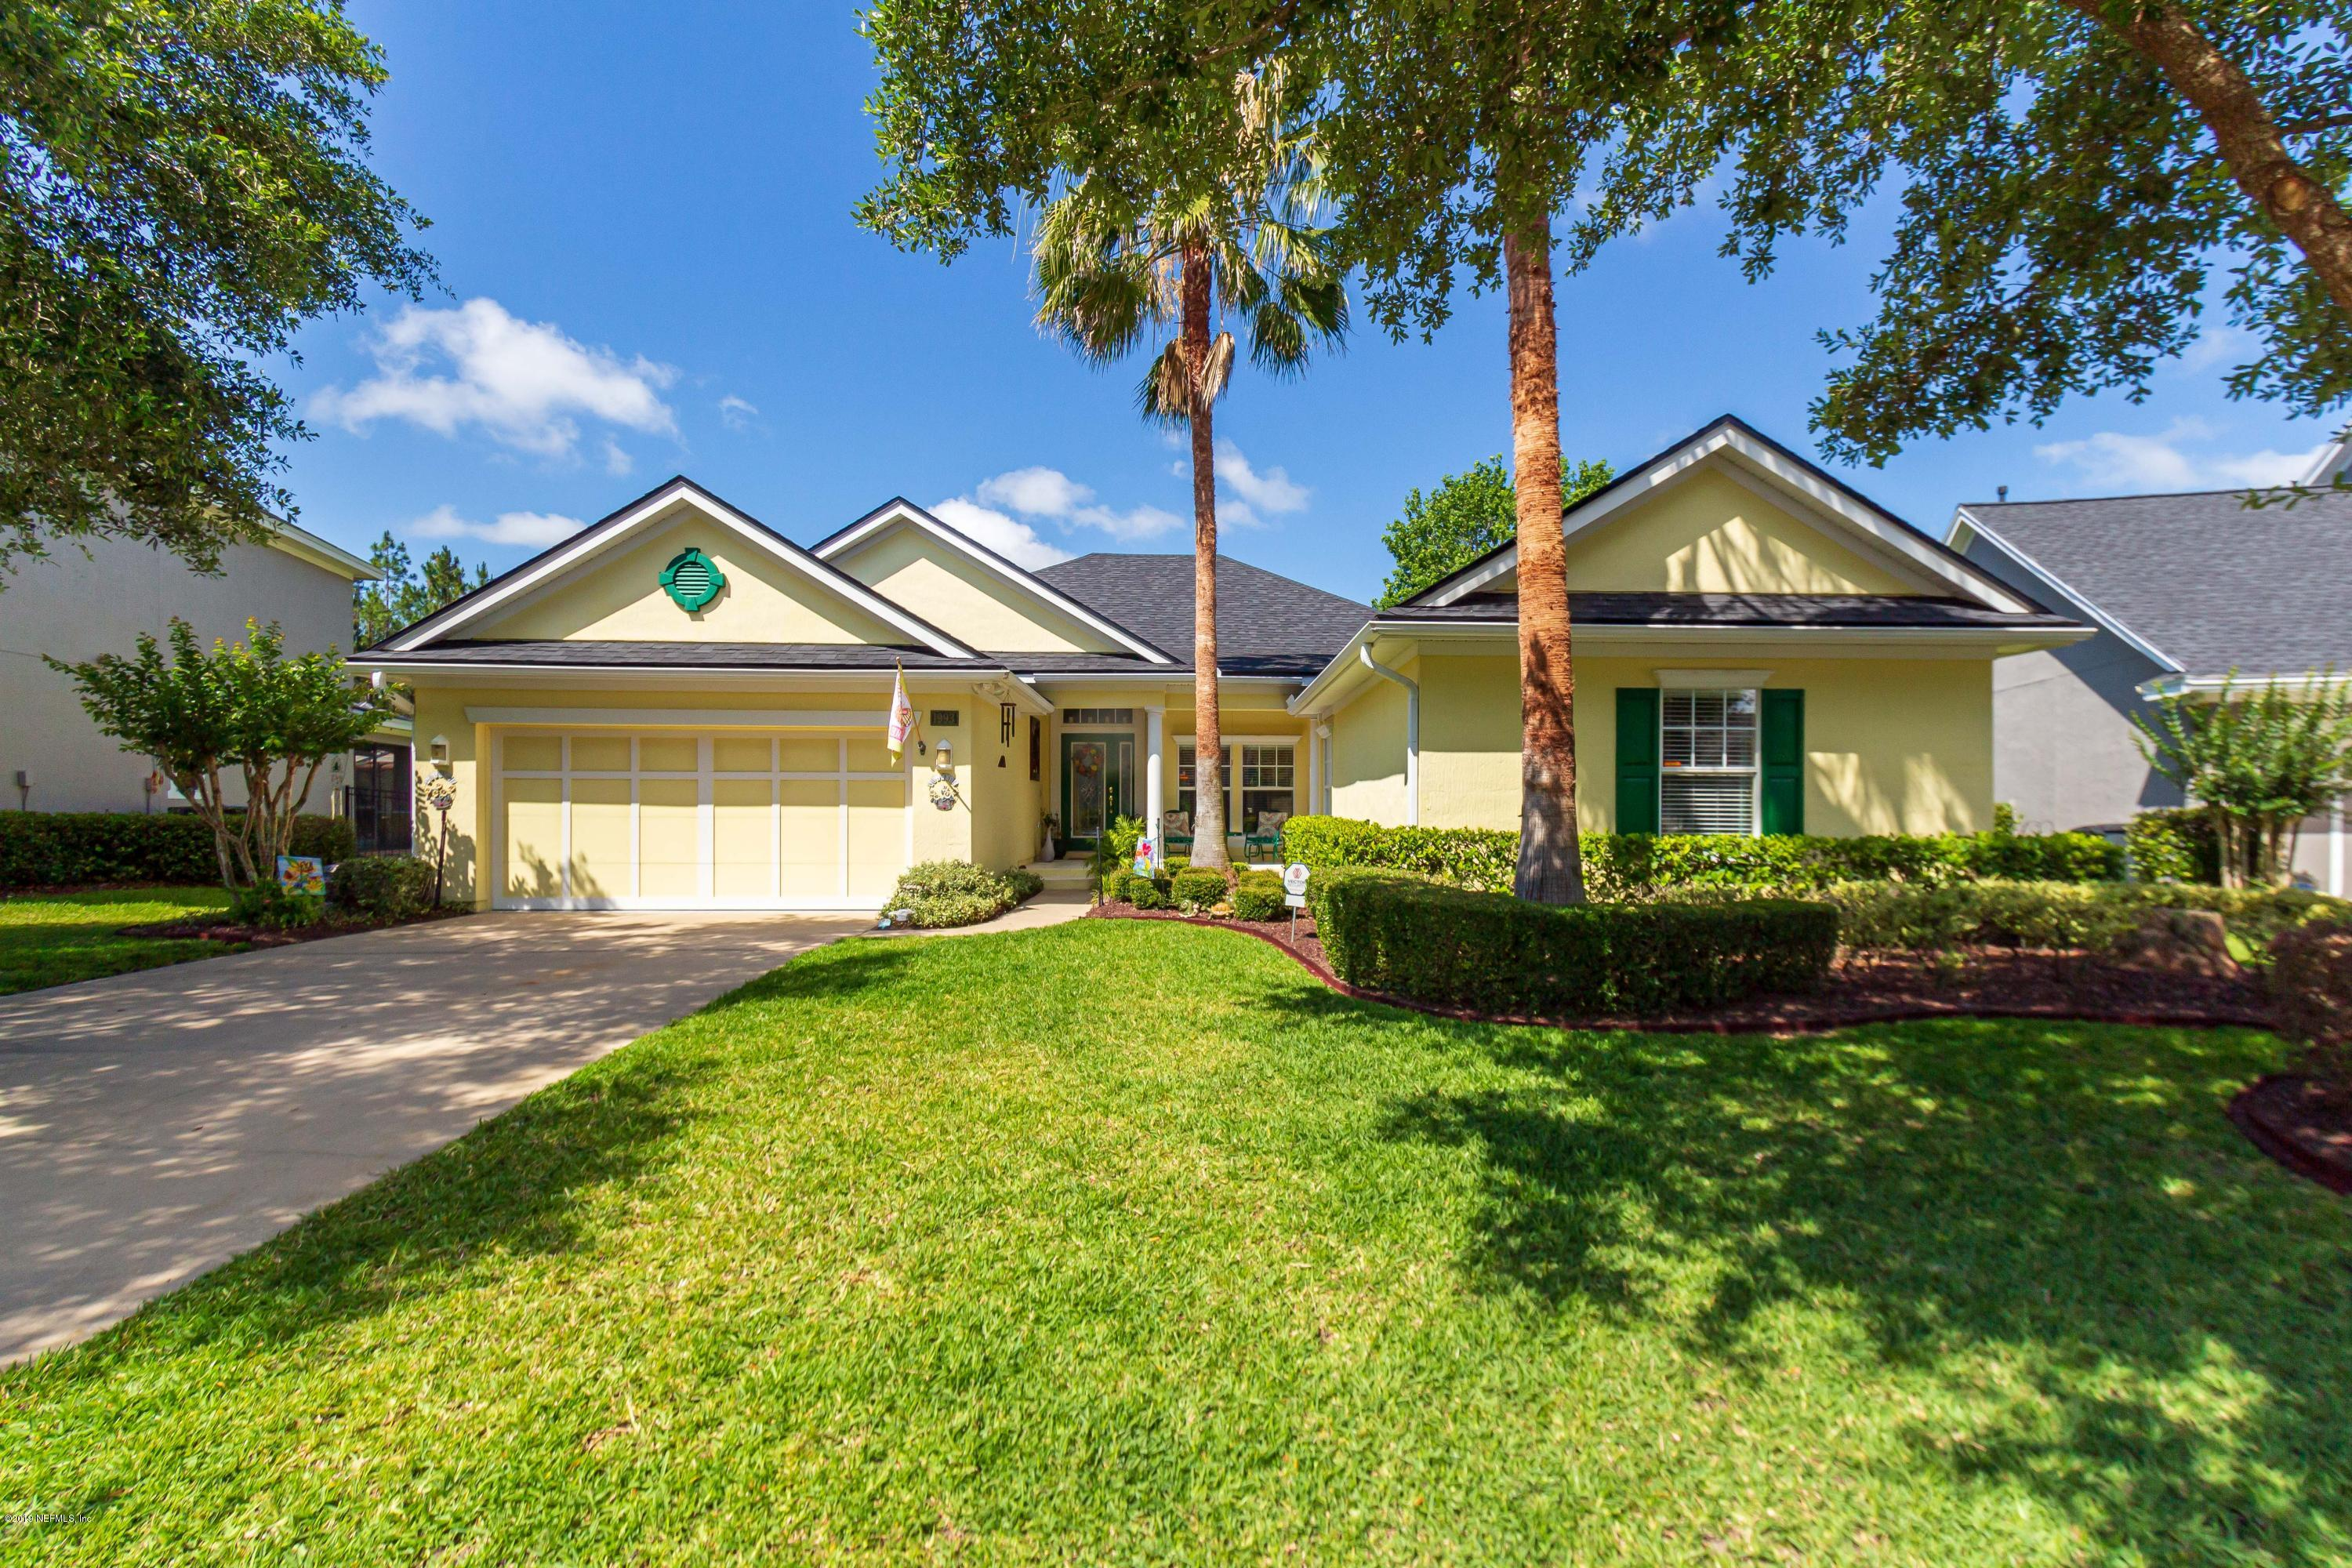 1993 GLENFIELD CROSSING CT ST AUGUSTINE - 1